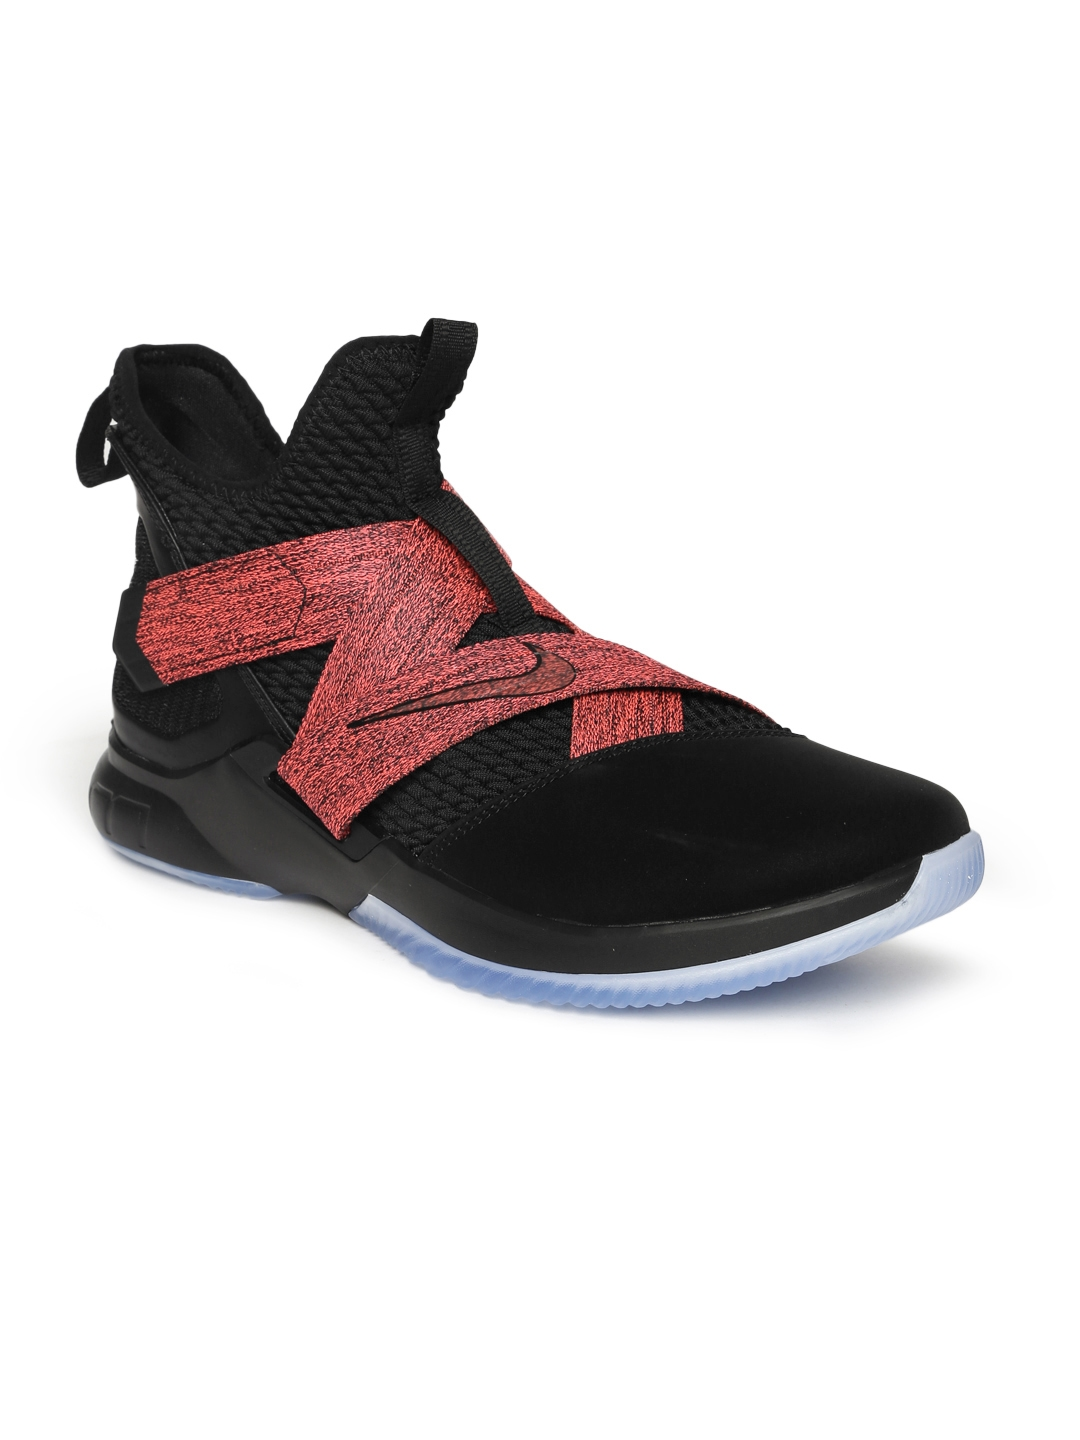 6bab1dc6a204 Buy Nike Men Black   Pink Lebron Soldier XII Mid Top Basketball ...